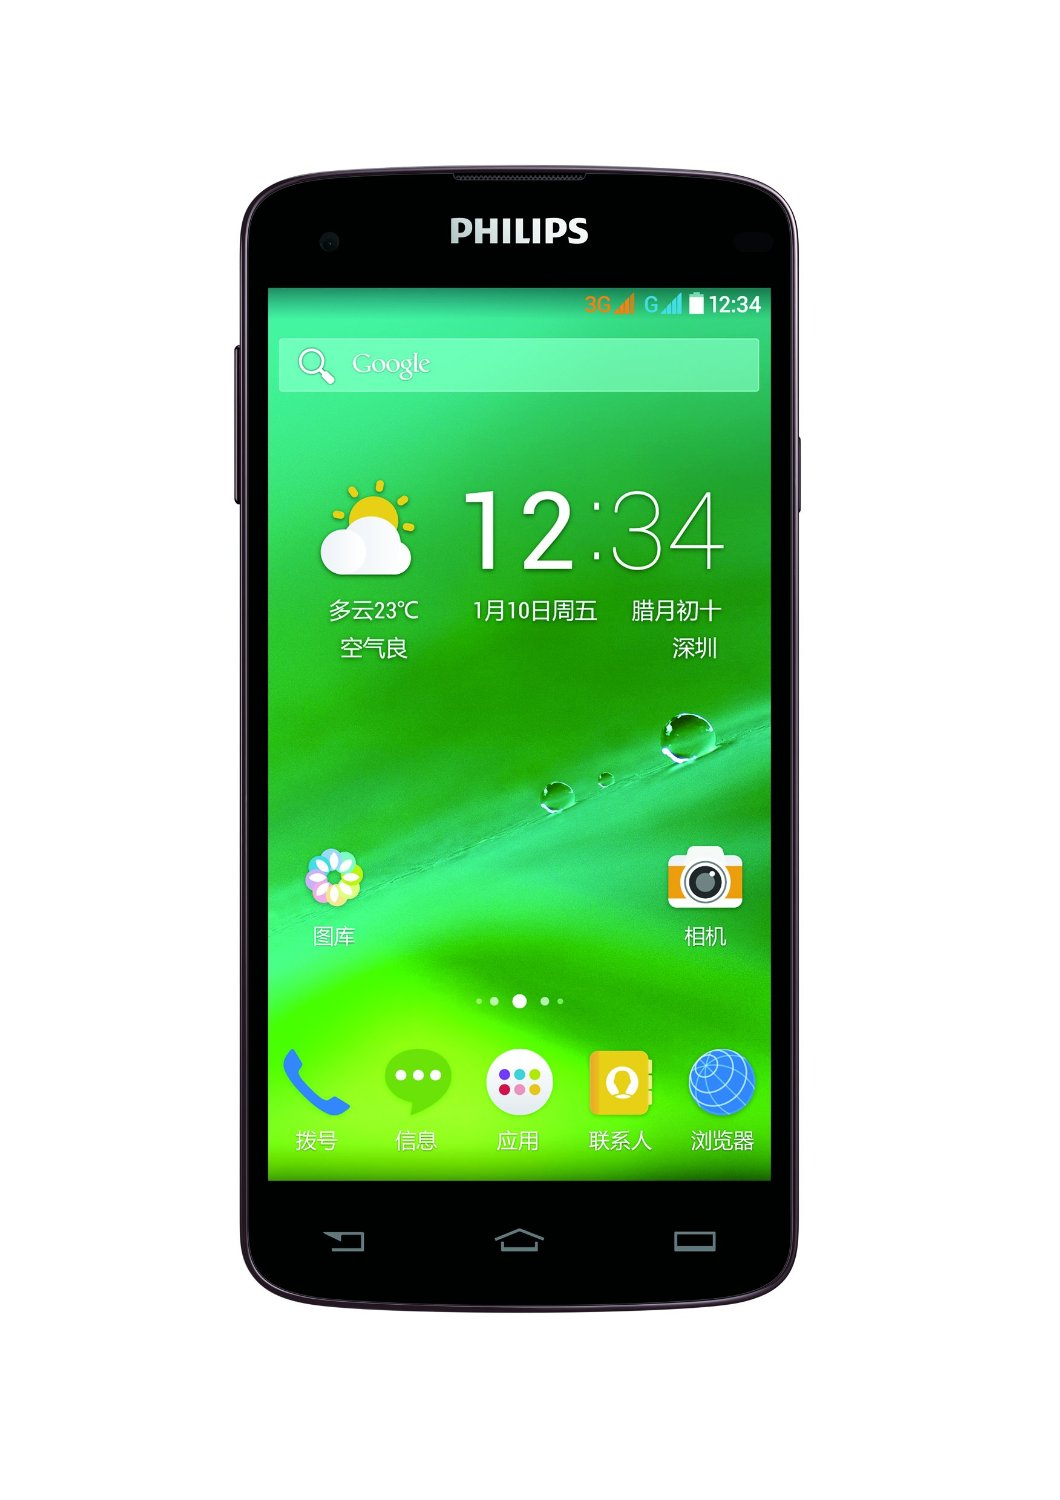 Mobile Communications PHILIPS Philips I908 phone really eight nuclear long standby 13 million pixels